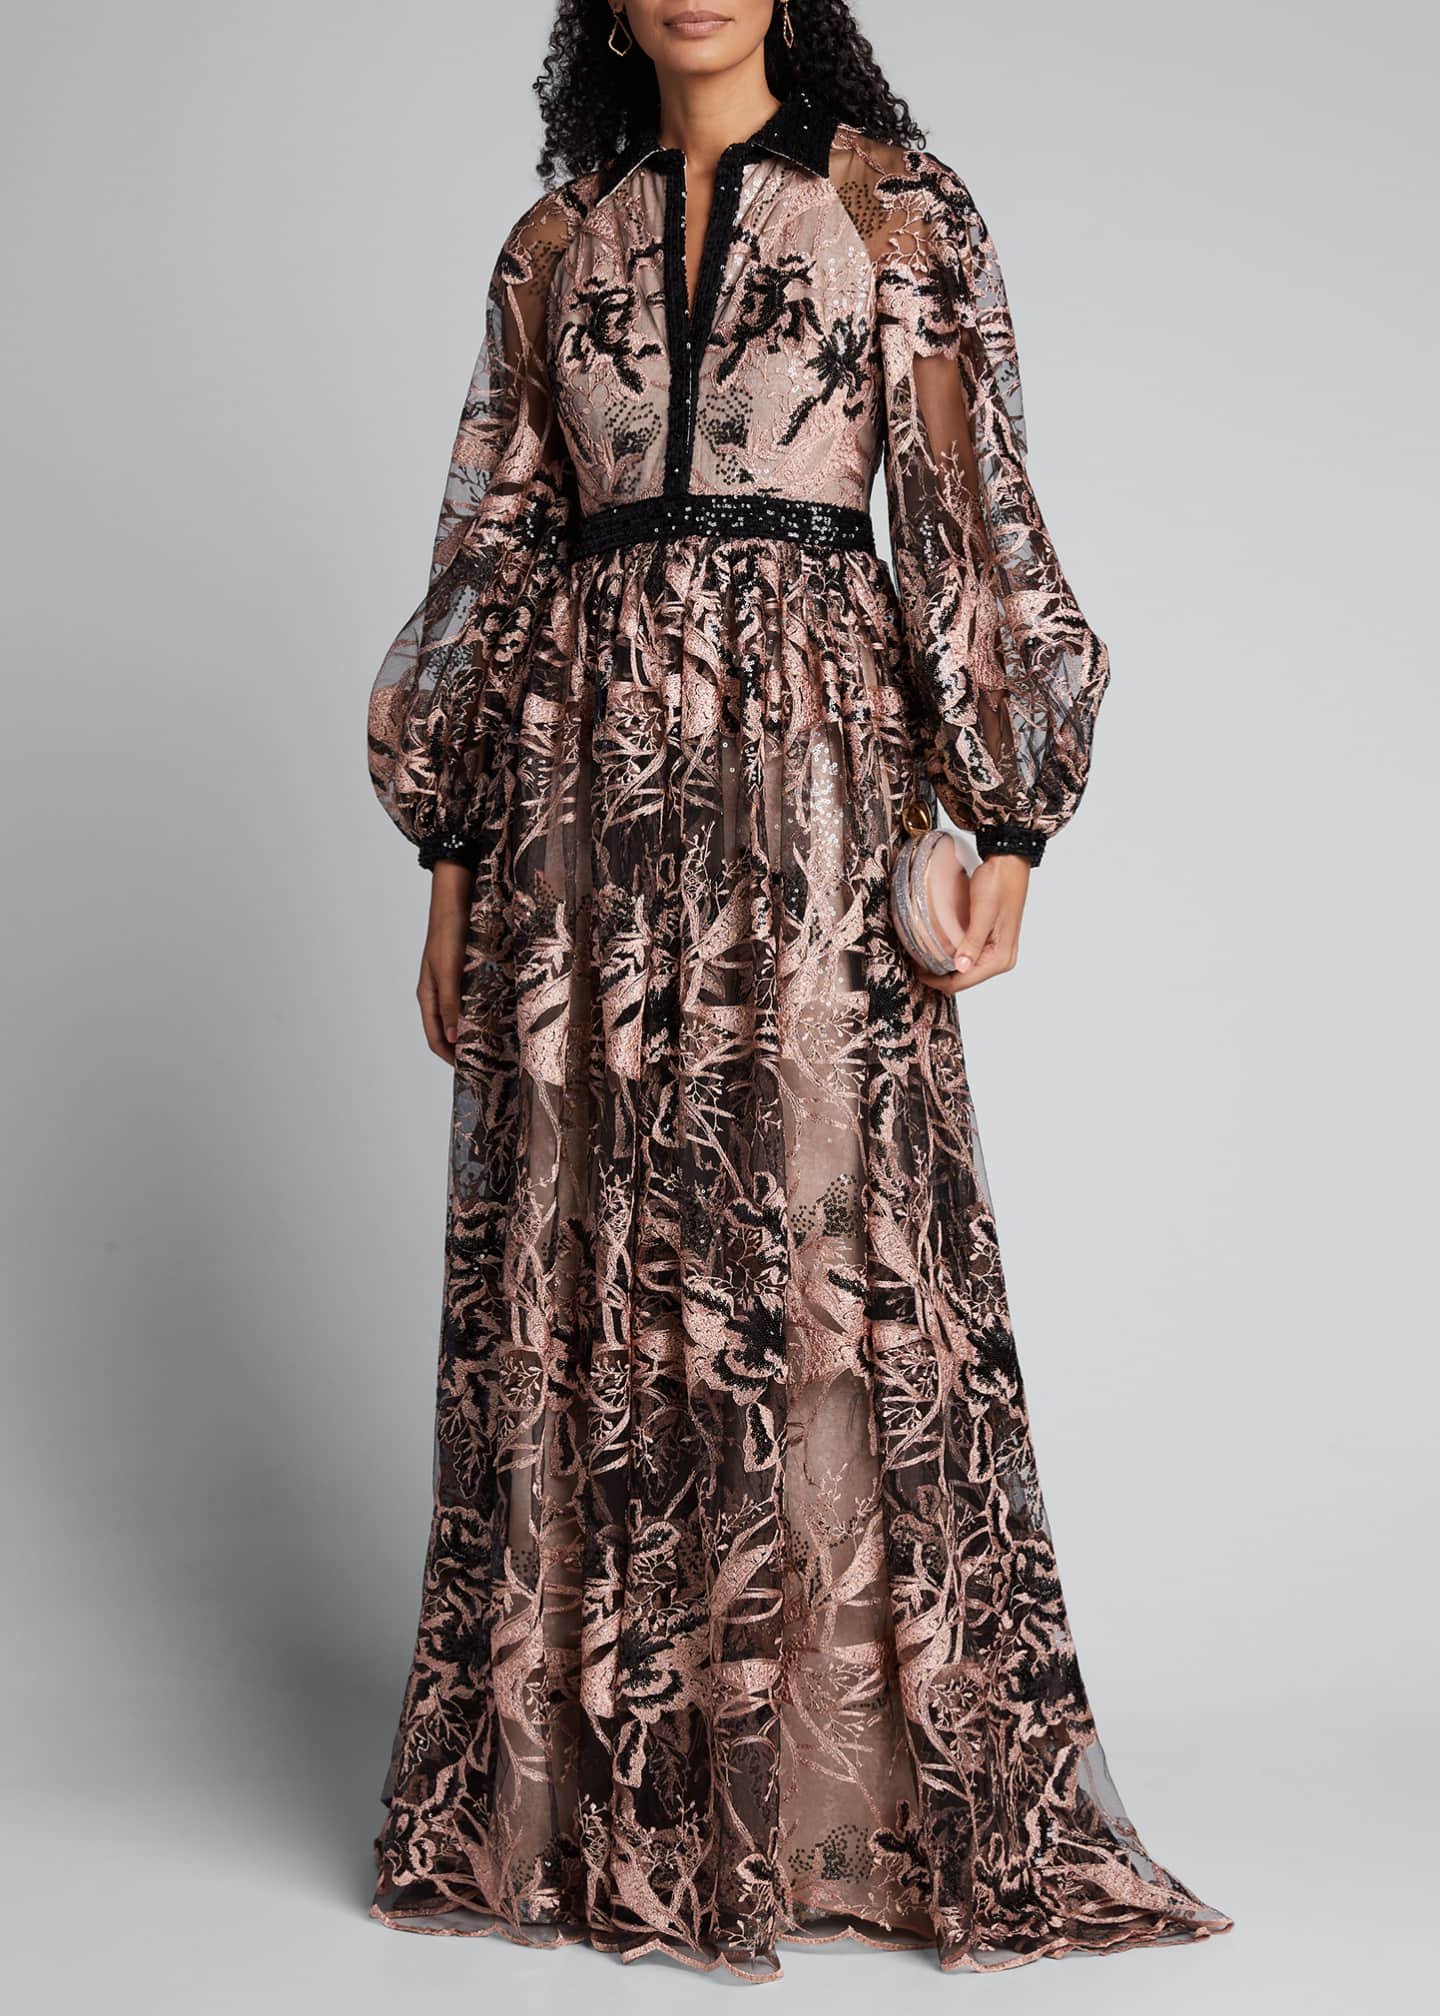 Badgley Mischka Couture Embroidered and Sequined Shirtdress